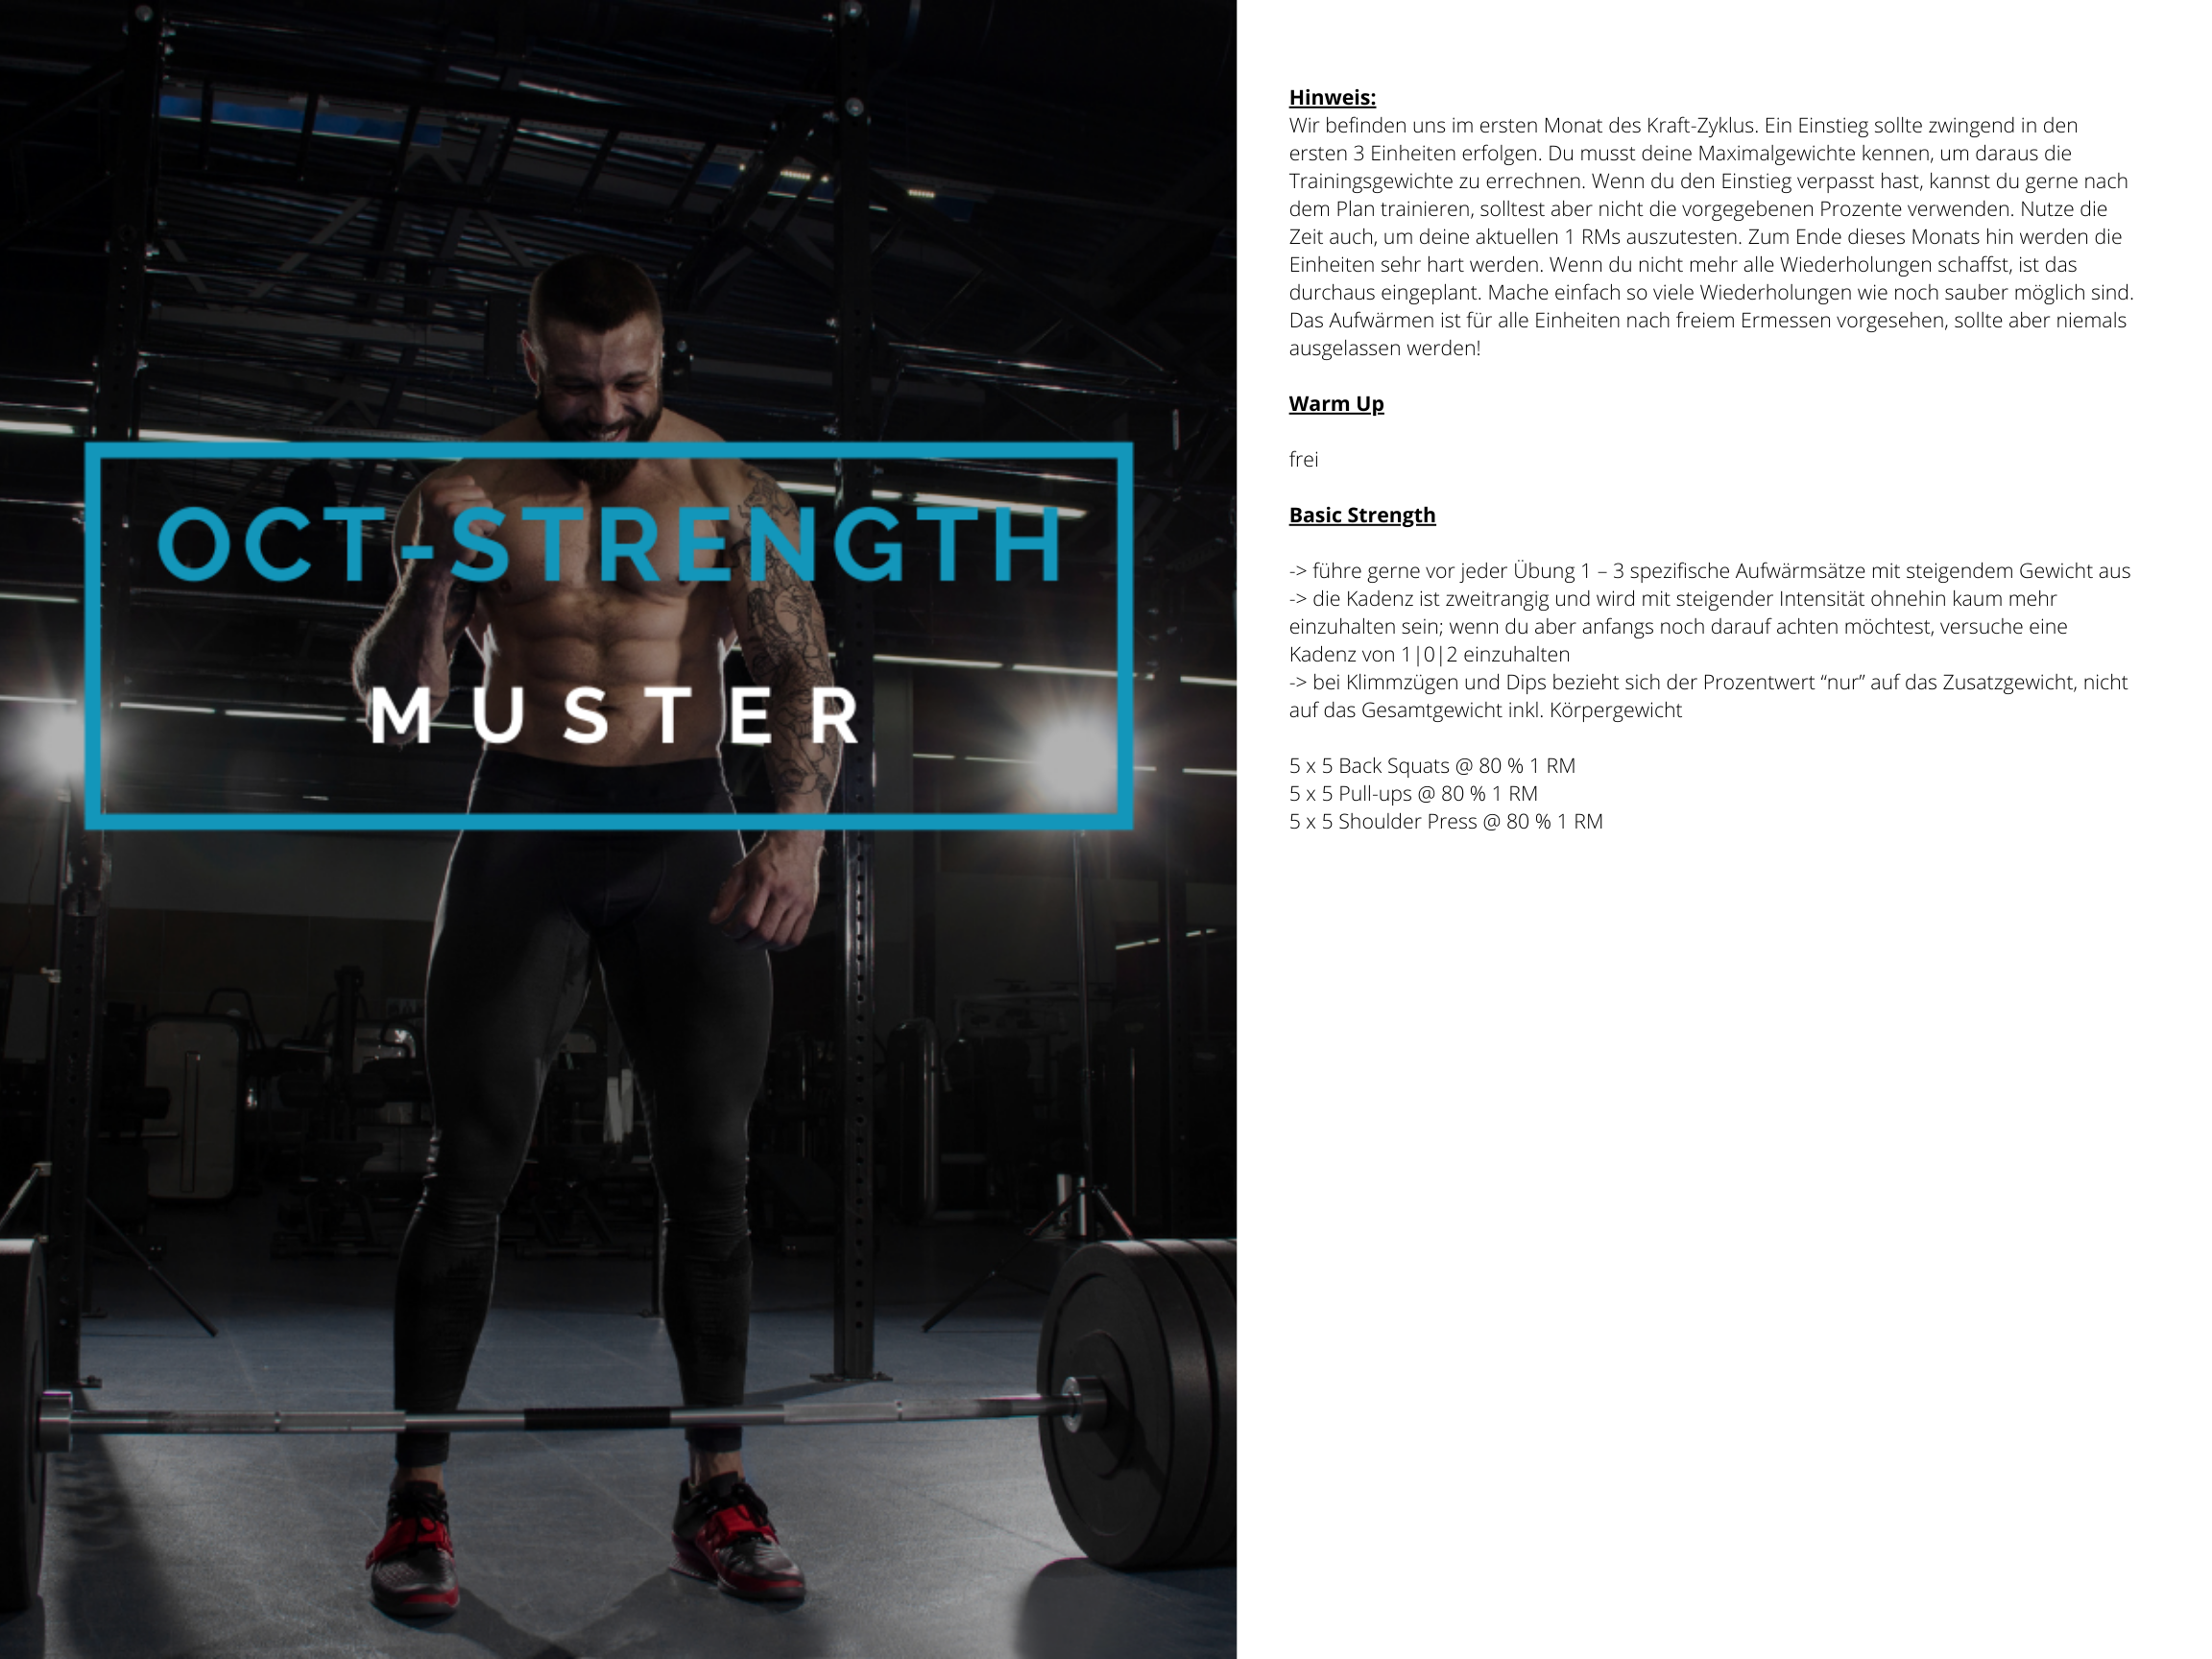 OCT-STRENGTH Muster Trainingsplan 1